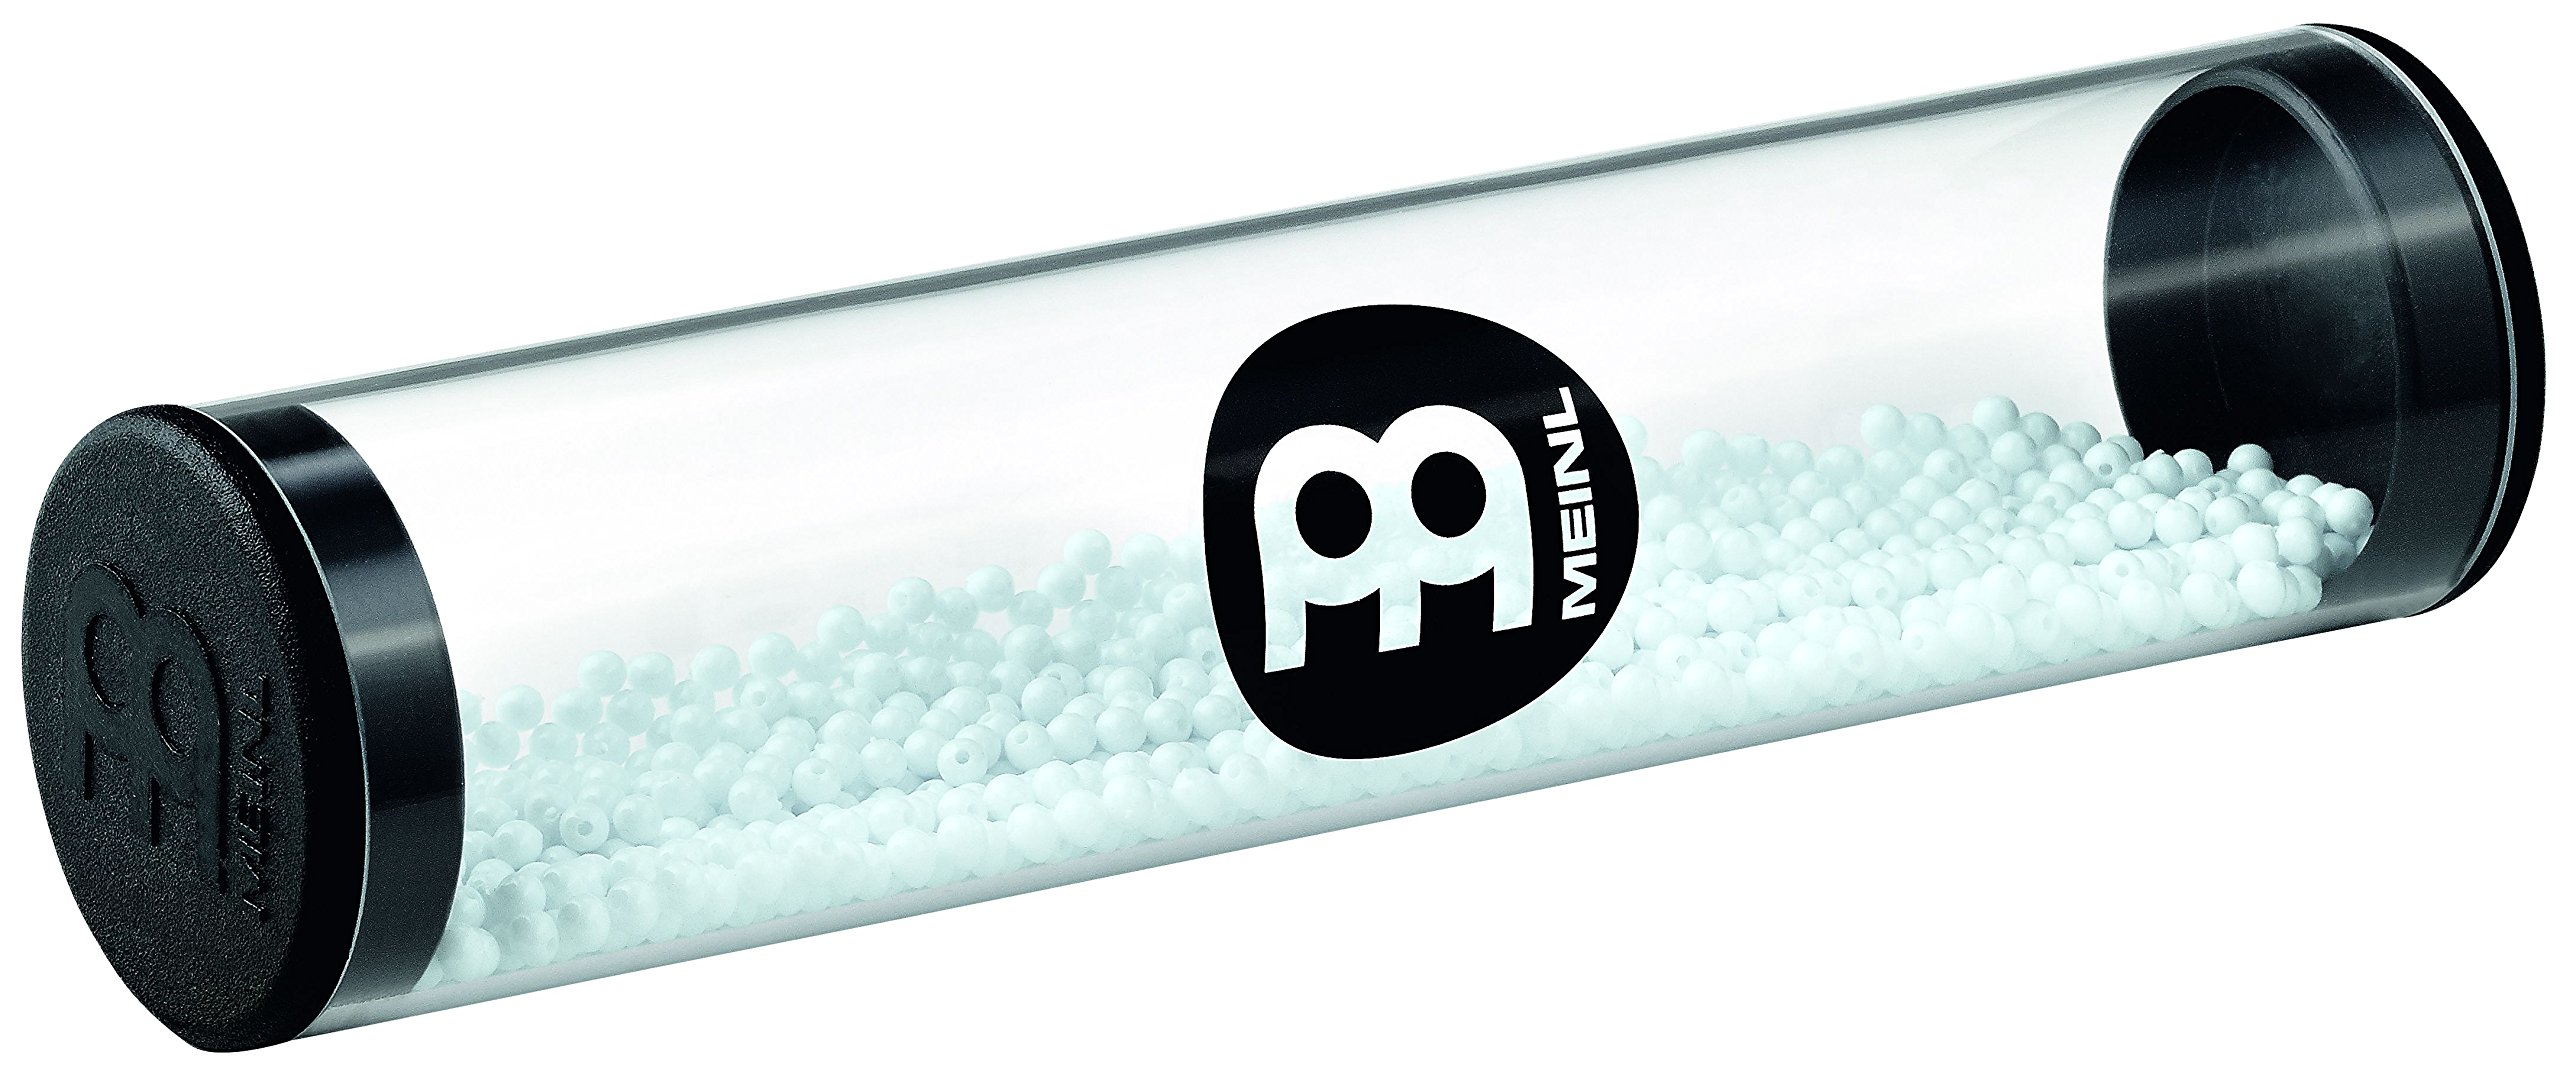 Meinl Percussion Crystal Shaker with Soft Filling - NOT MADE IN CHINA - Low Volume for Recording Sessions and Live Acoustic Shows, 2-YEAR WARRANTY, White (SH26-L-S)